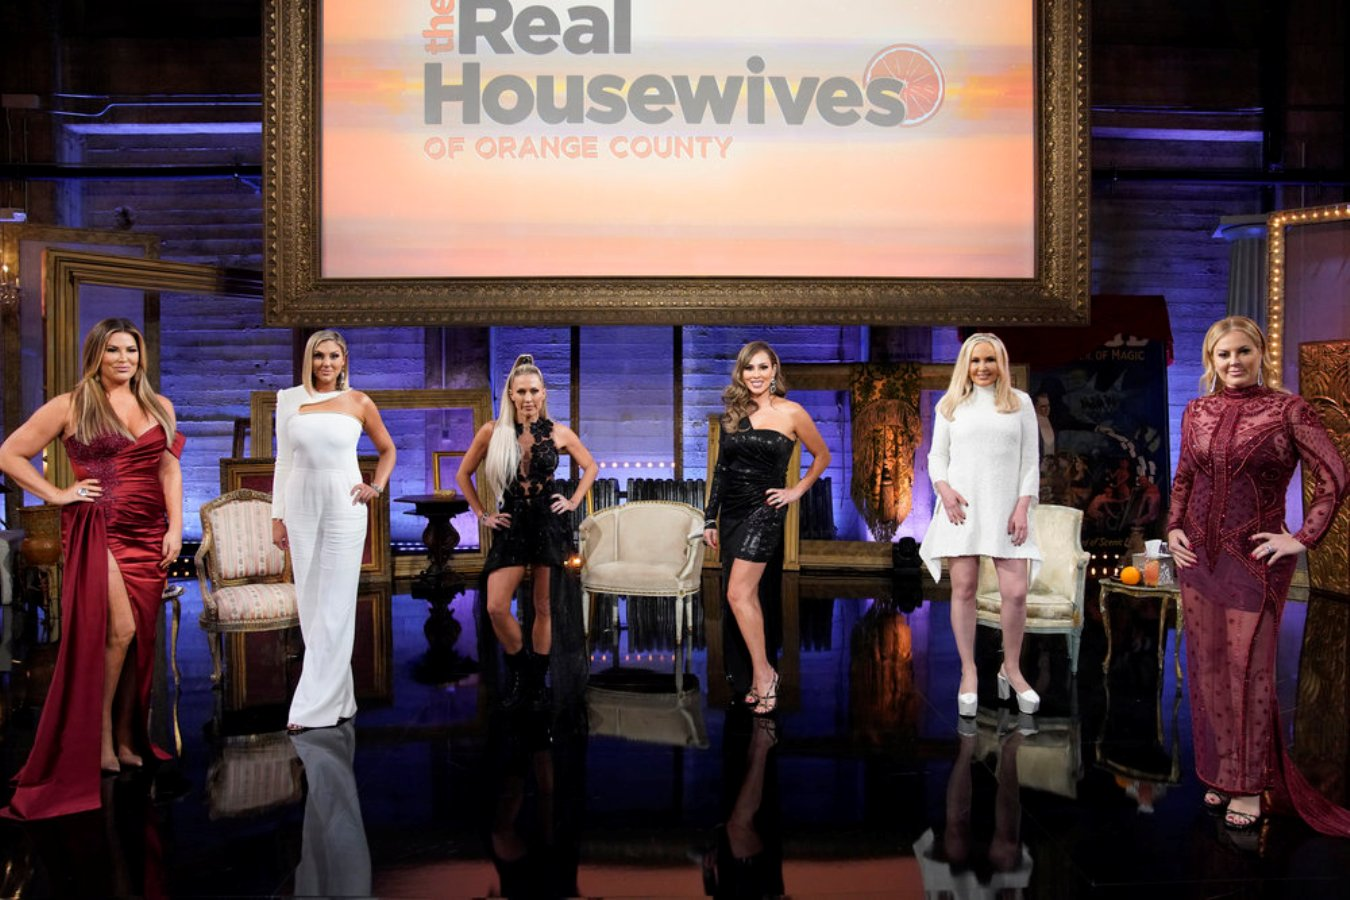 """VIDEO: Watch the RHOC Reunion Trailer! Braunwyn Windham-Burke is Confronted by Cast About """"Narcissism"""" as Kelly Dodd Says She's """"So Full of Herself"""" and Shannon Beador Targets Her Ego, Plus Braunwyn is Accused of Saying Something """"Horrific"""" to Her 14-Year-Old Daughter"""